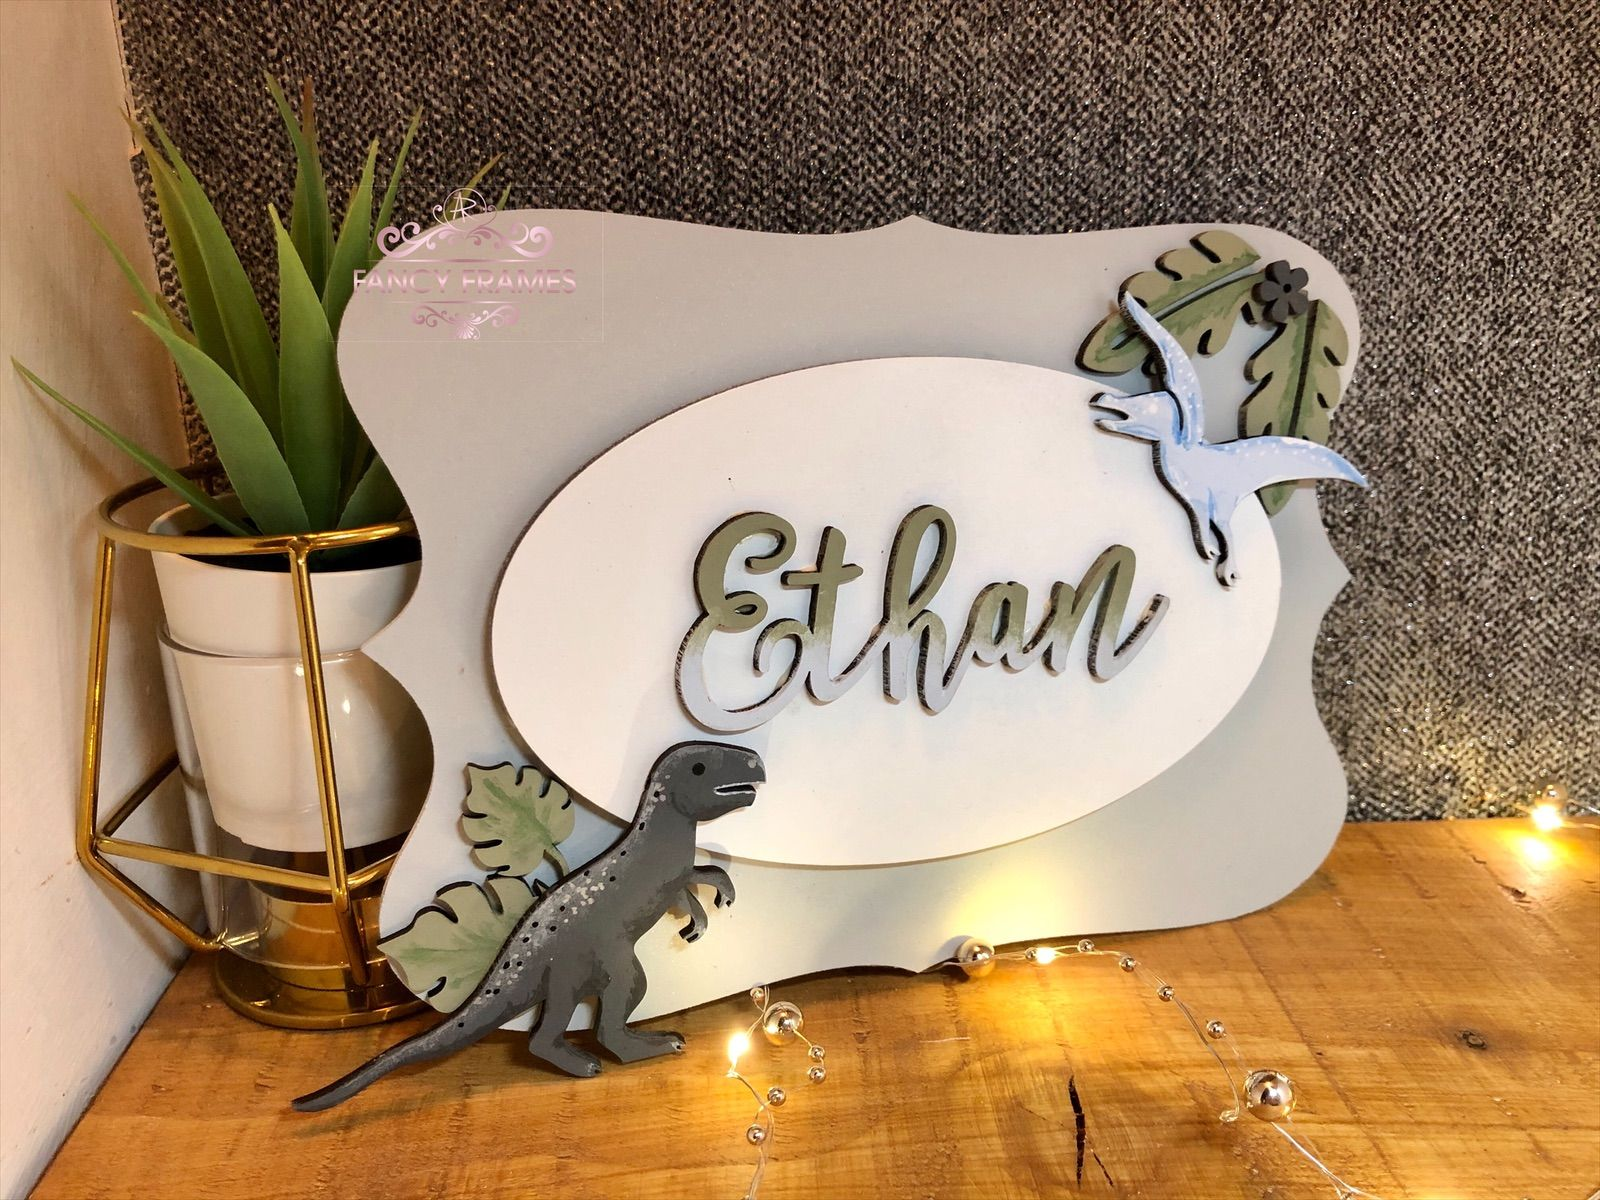 Personalised dinosaur plaque in neutral greys, earthy greens and baby blues    #streetsign #trexdoorsign #nurserywallplaque #handpaintedsign #boysbedroom #hangingplaque #dinosaurname #dinosaurdoorsign #boysnurserydecor #woodenhangingsign #dinosaurwallart #dinosaurtheme #personalisedname  #dinosaur  #dinosaurnursery